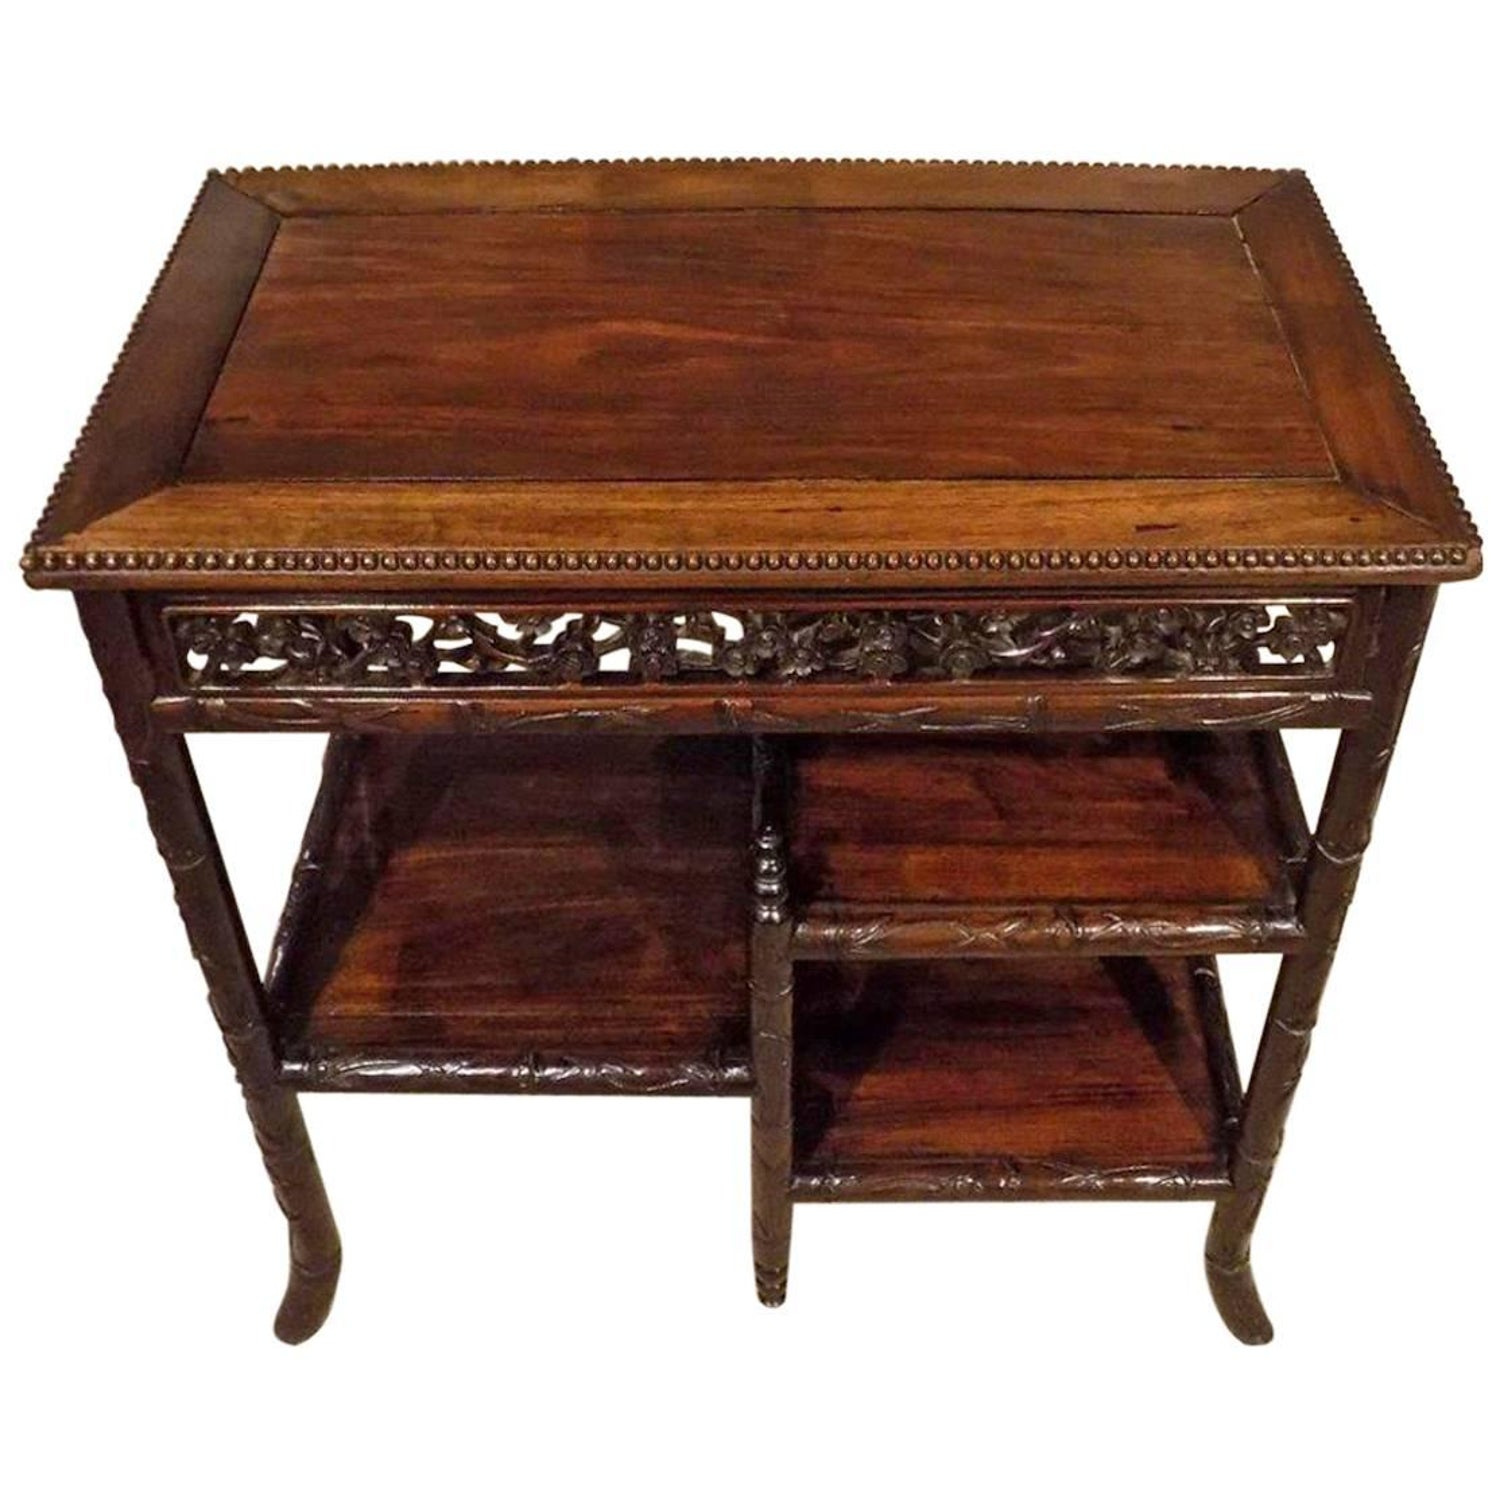 19th Century Chinese Chippendale Fretwork Side Table at 1stdibs